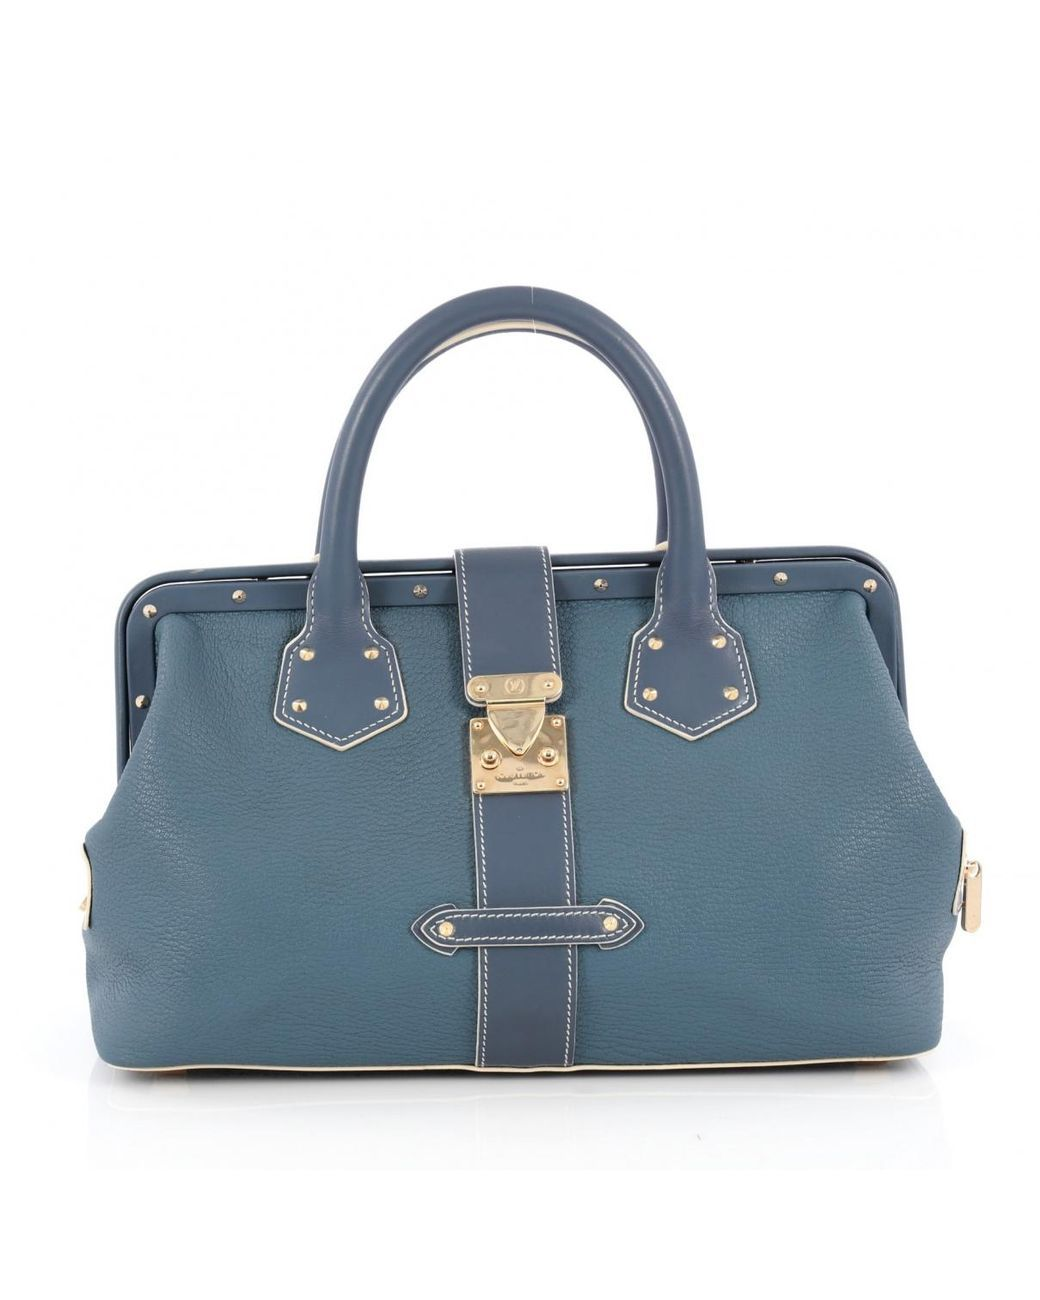 Women s Pre-owned Blue Leather Handbag  a1e0842f6